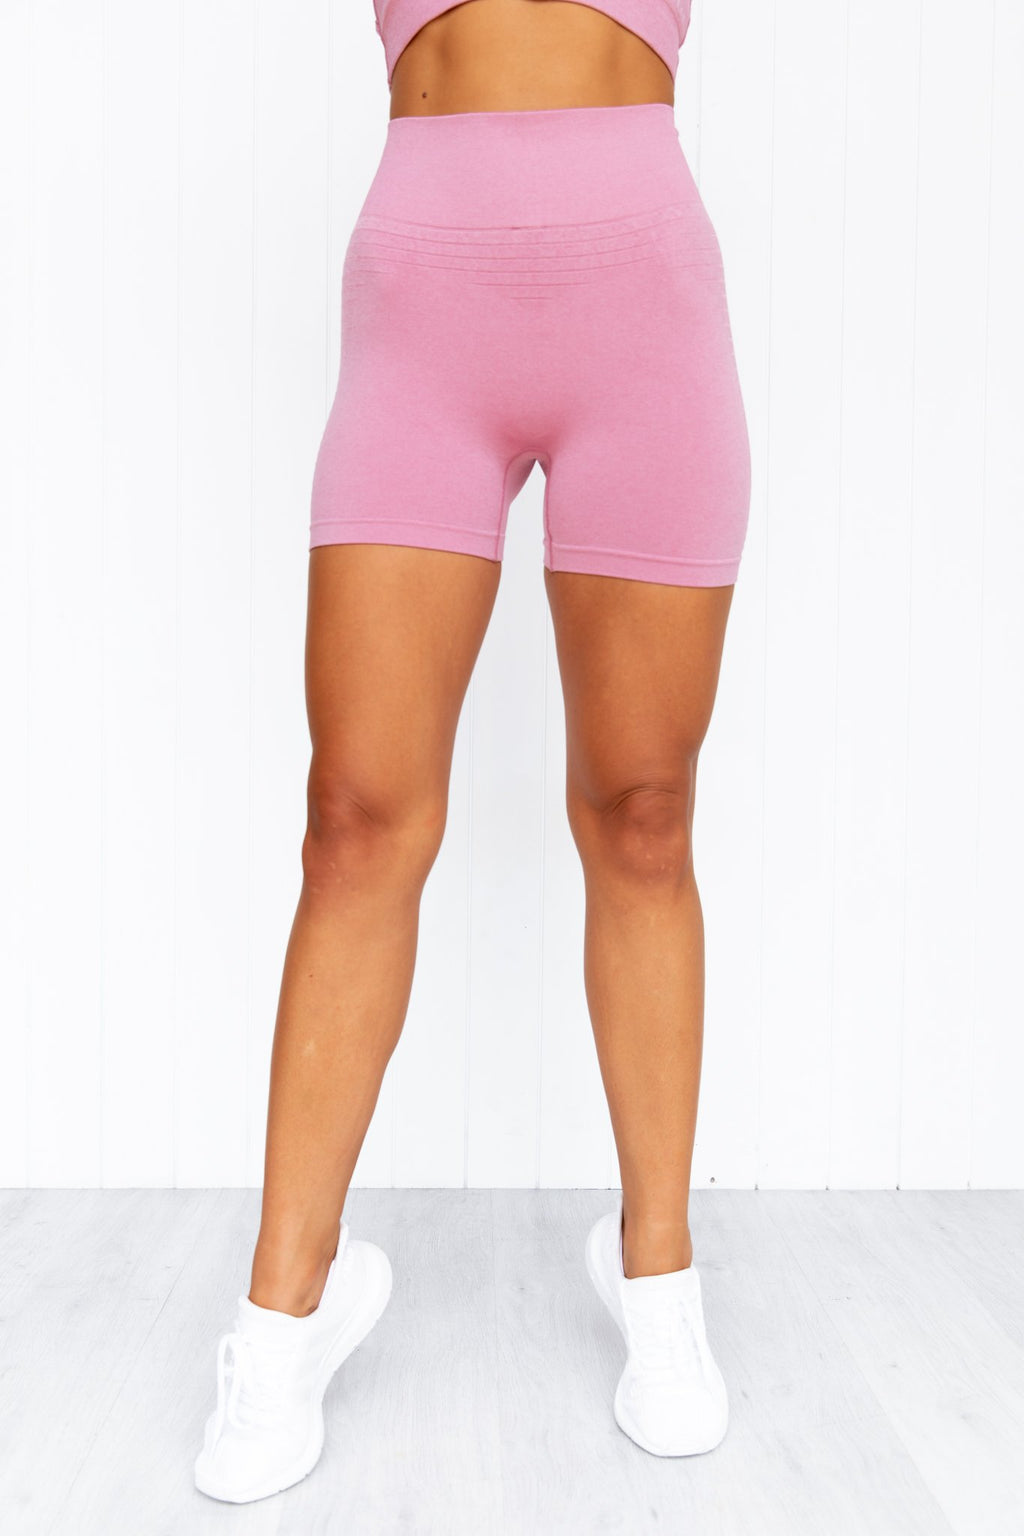 Geo Seamless High Waisted Shorts - Pink - PURE DASH